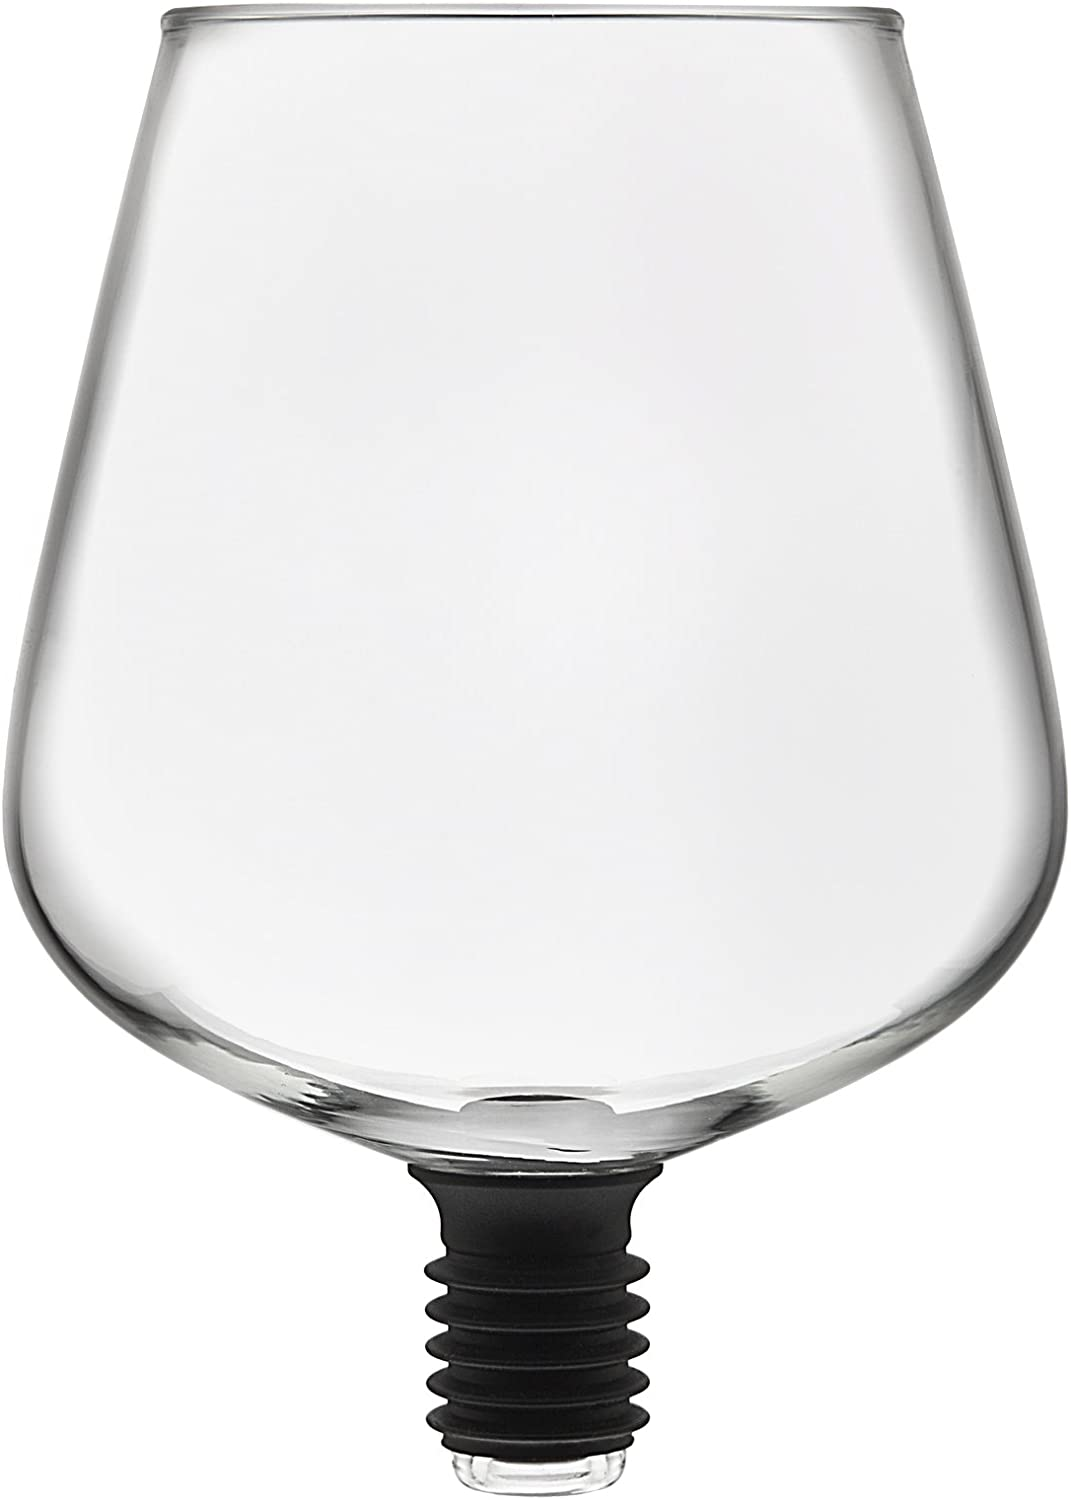 Godinger ChugMate Wine Glass Topper, Goblet to Drink Straight from The Bottle, The Original, 16oz, Clear